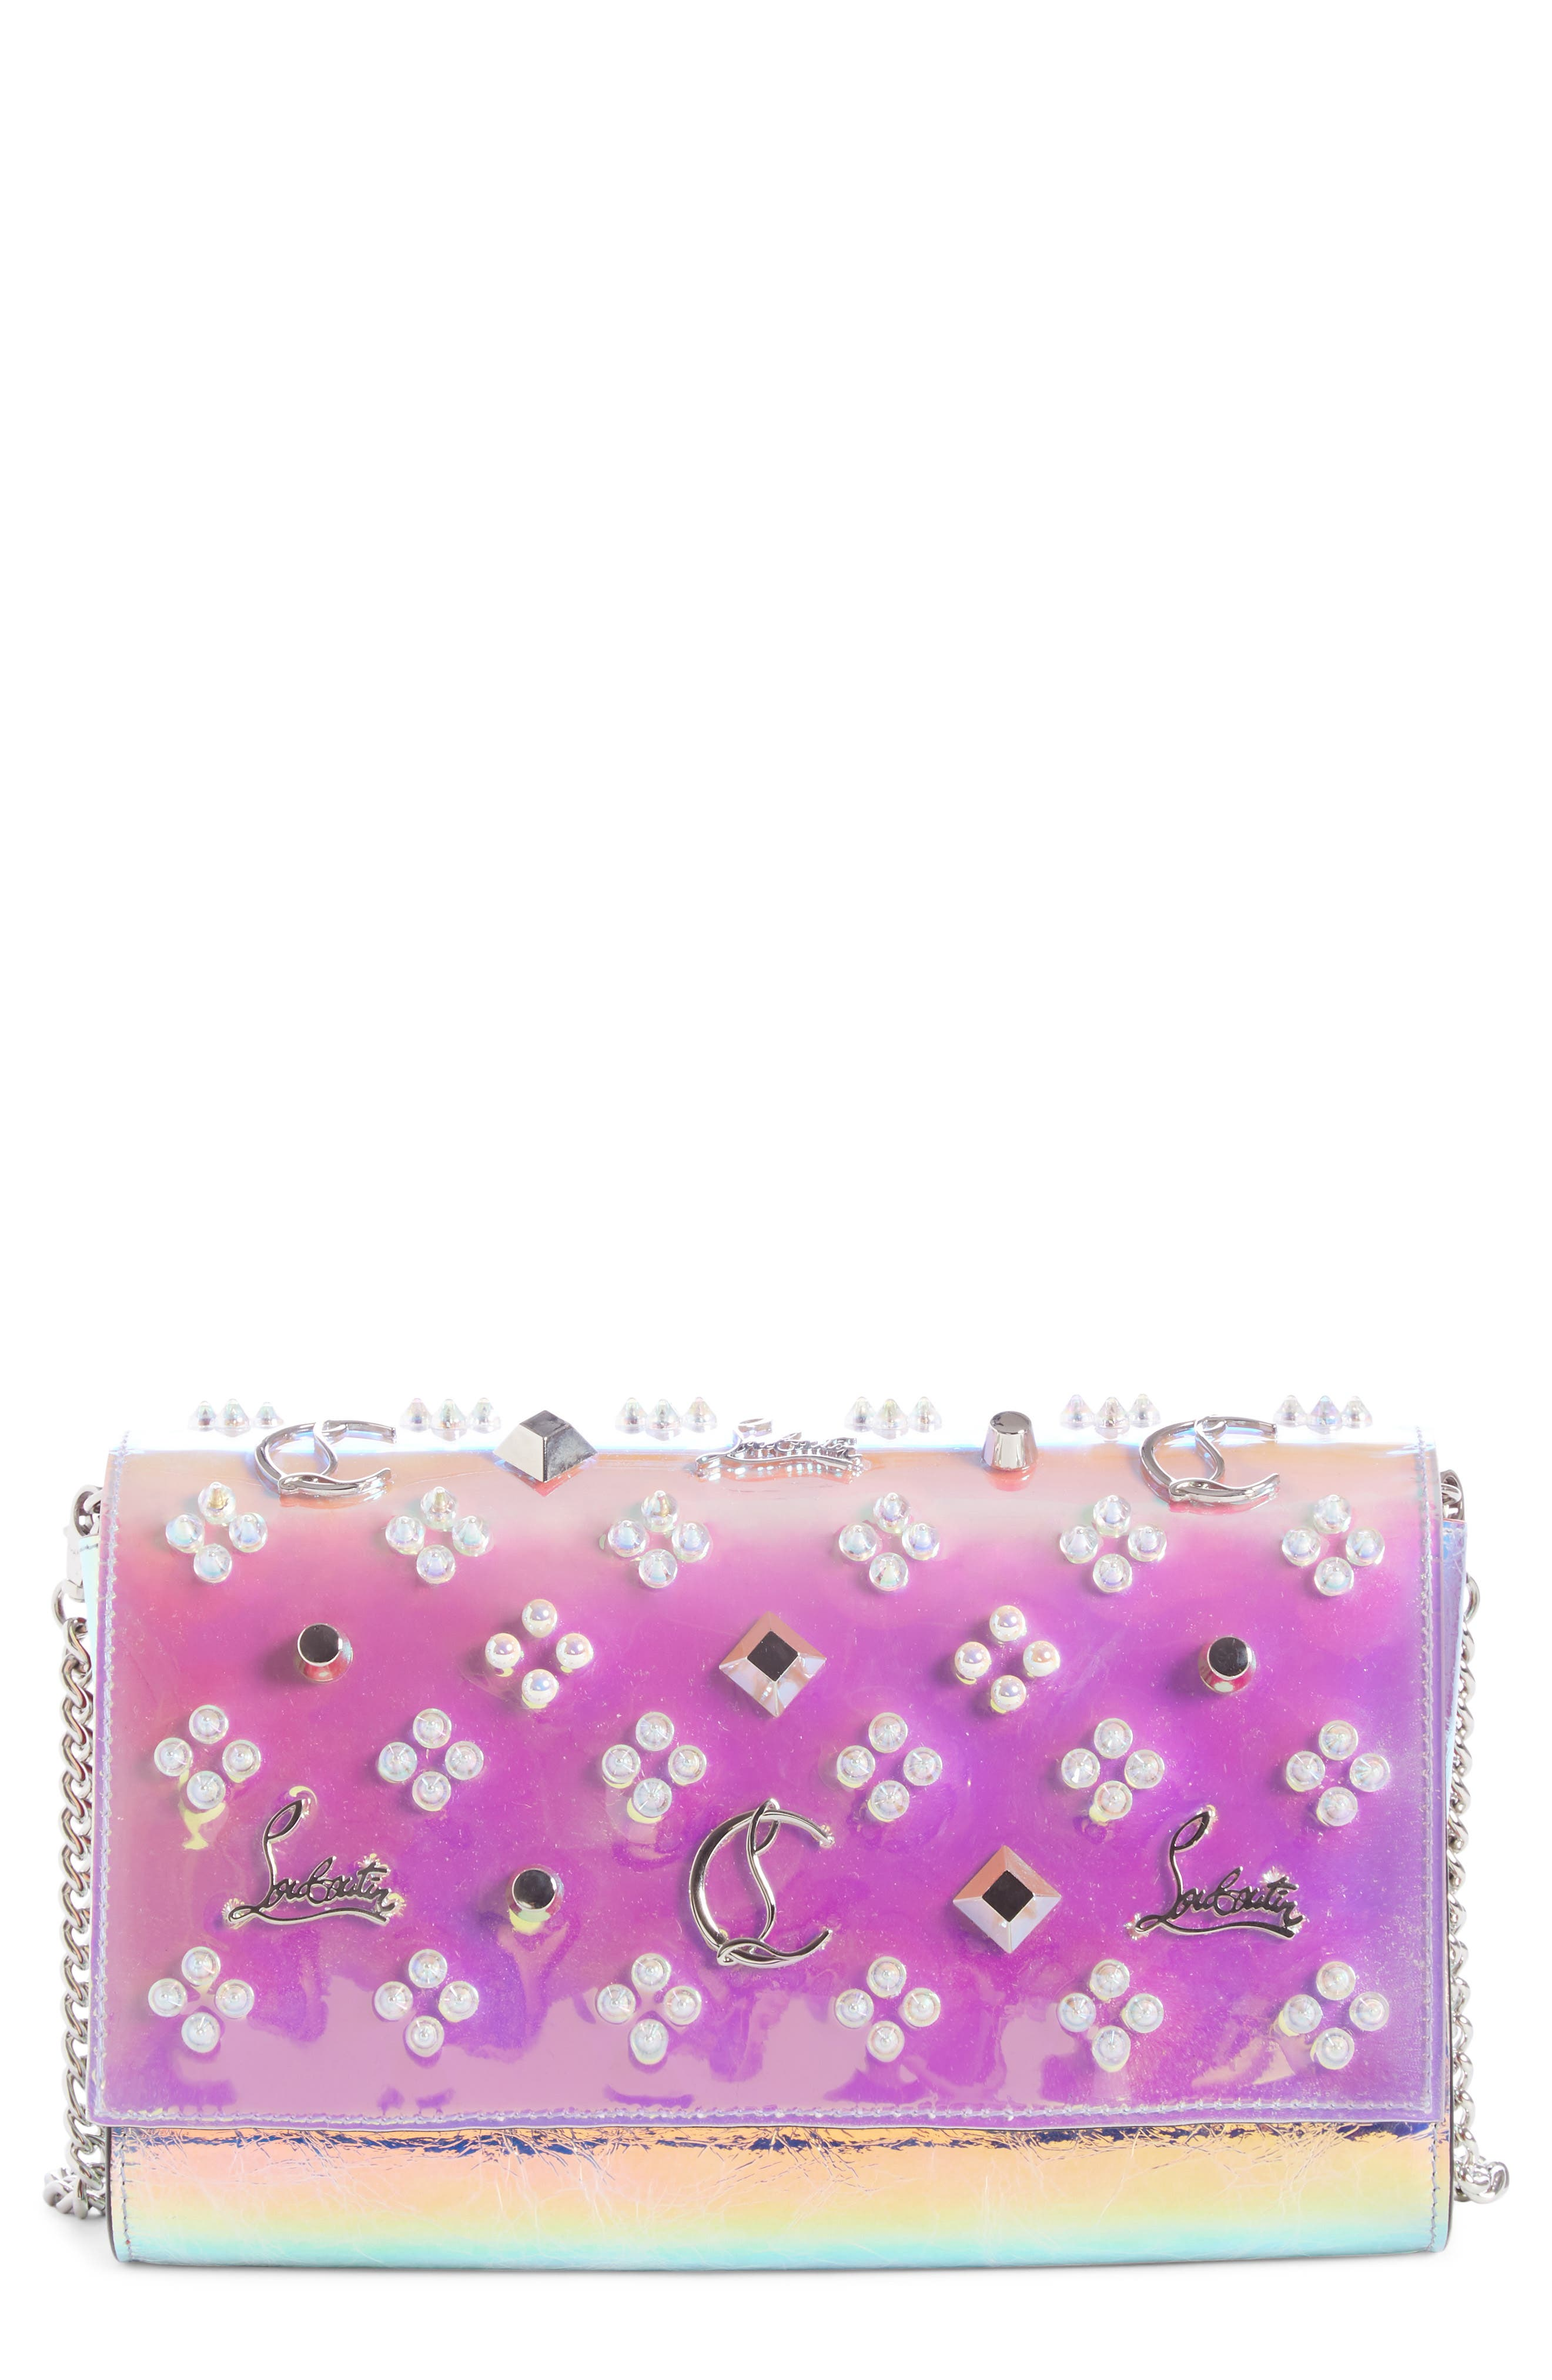 Paloma Loubisky Studded Leather Clutch,                             Main thumbnail 1, color,                             MULTI AB